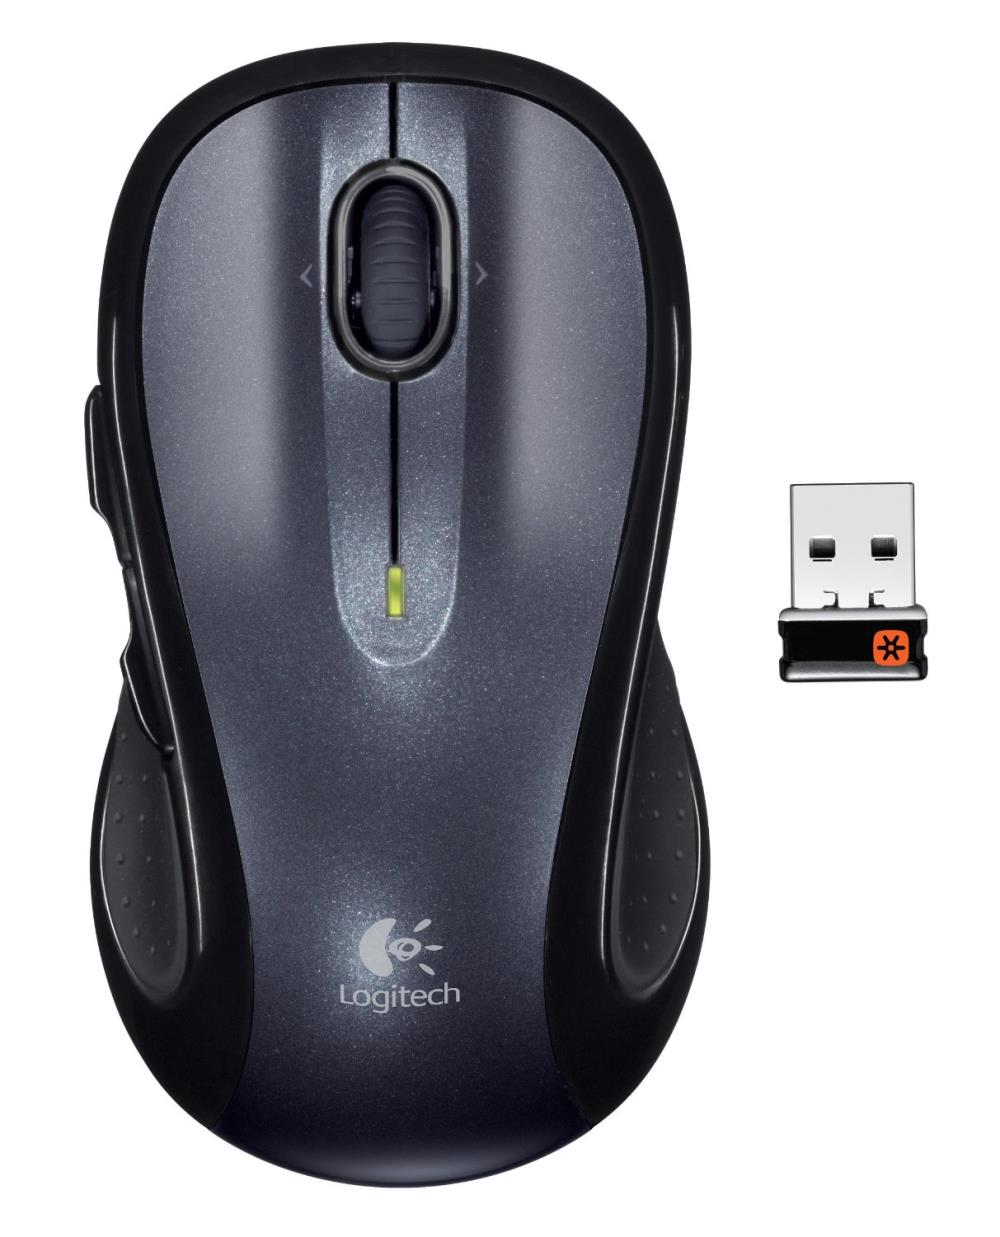 Free HKPOST New band Genuine Logitech M510 Wireless Mouse wireless Laser Mouse mice<br><br>Aliexpress